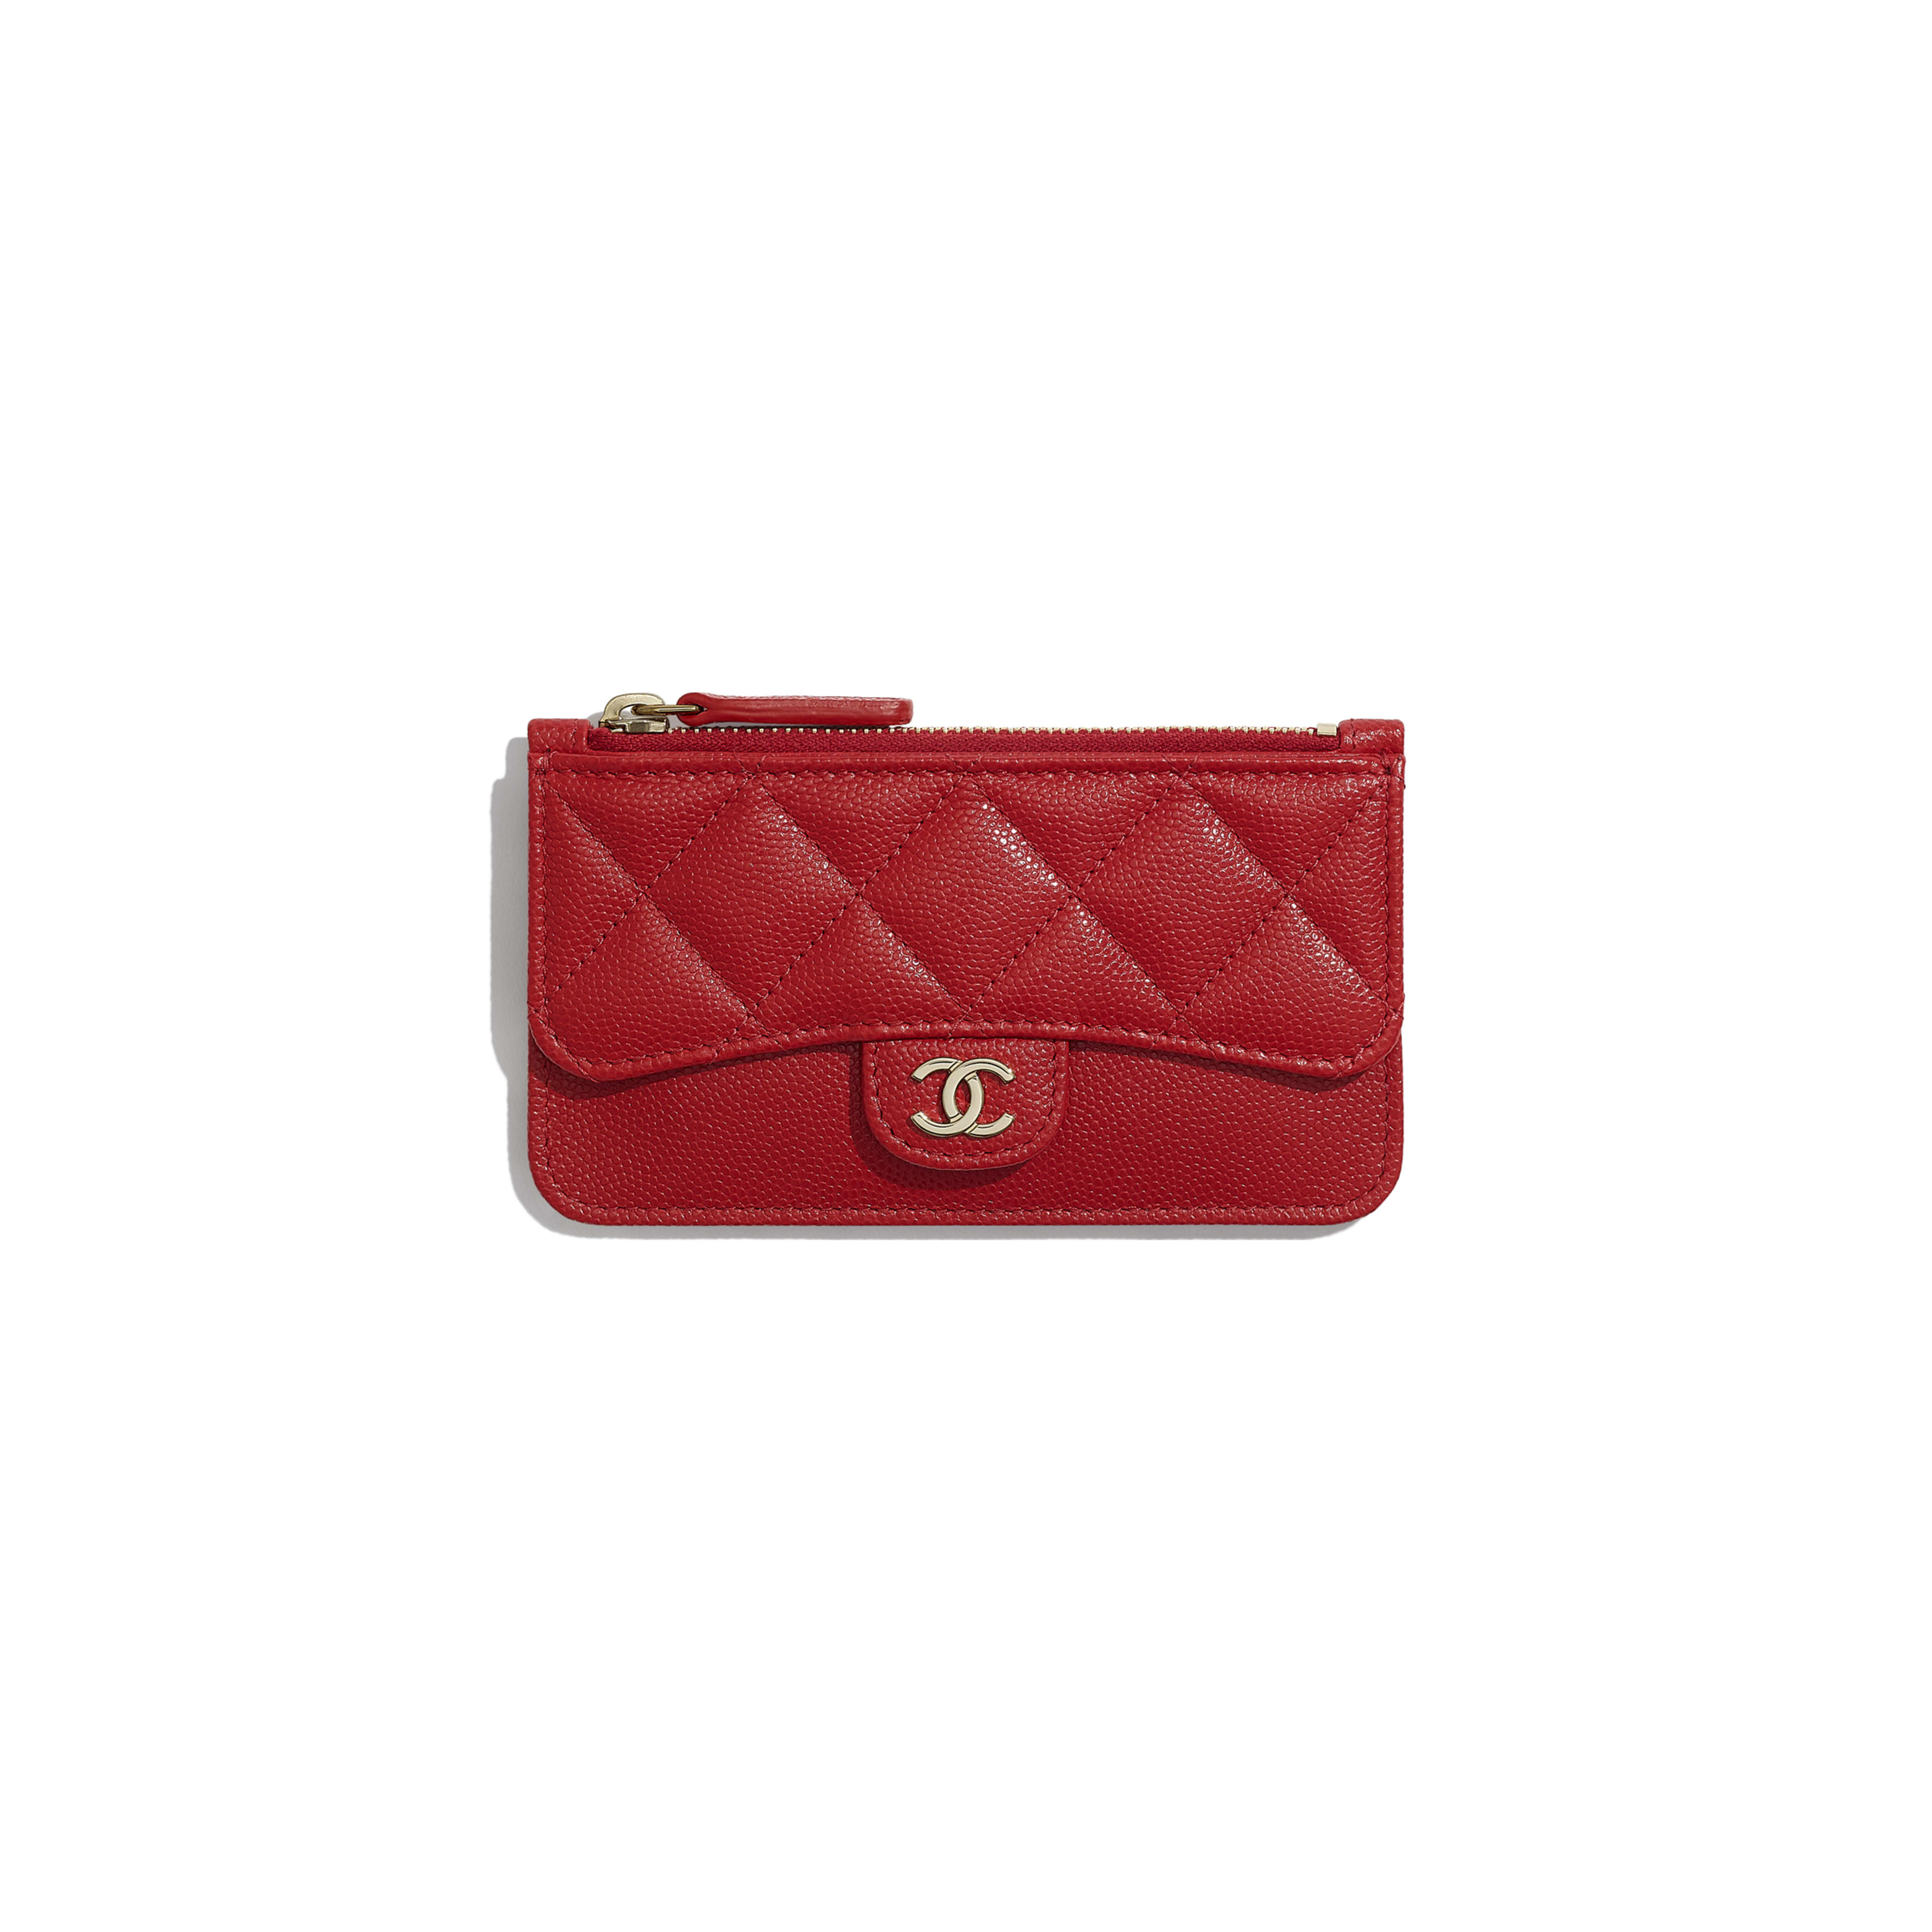 Classic Card Holder - Red - Grained Calfskin & Gold-Tone Metal - Default view - see full sized version